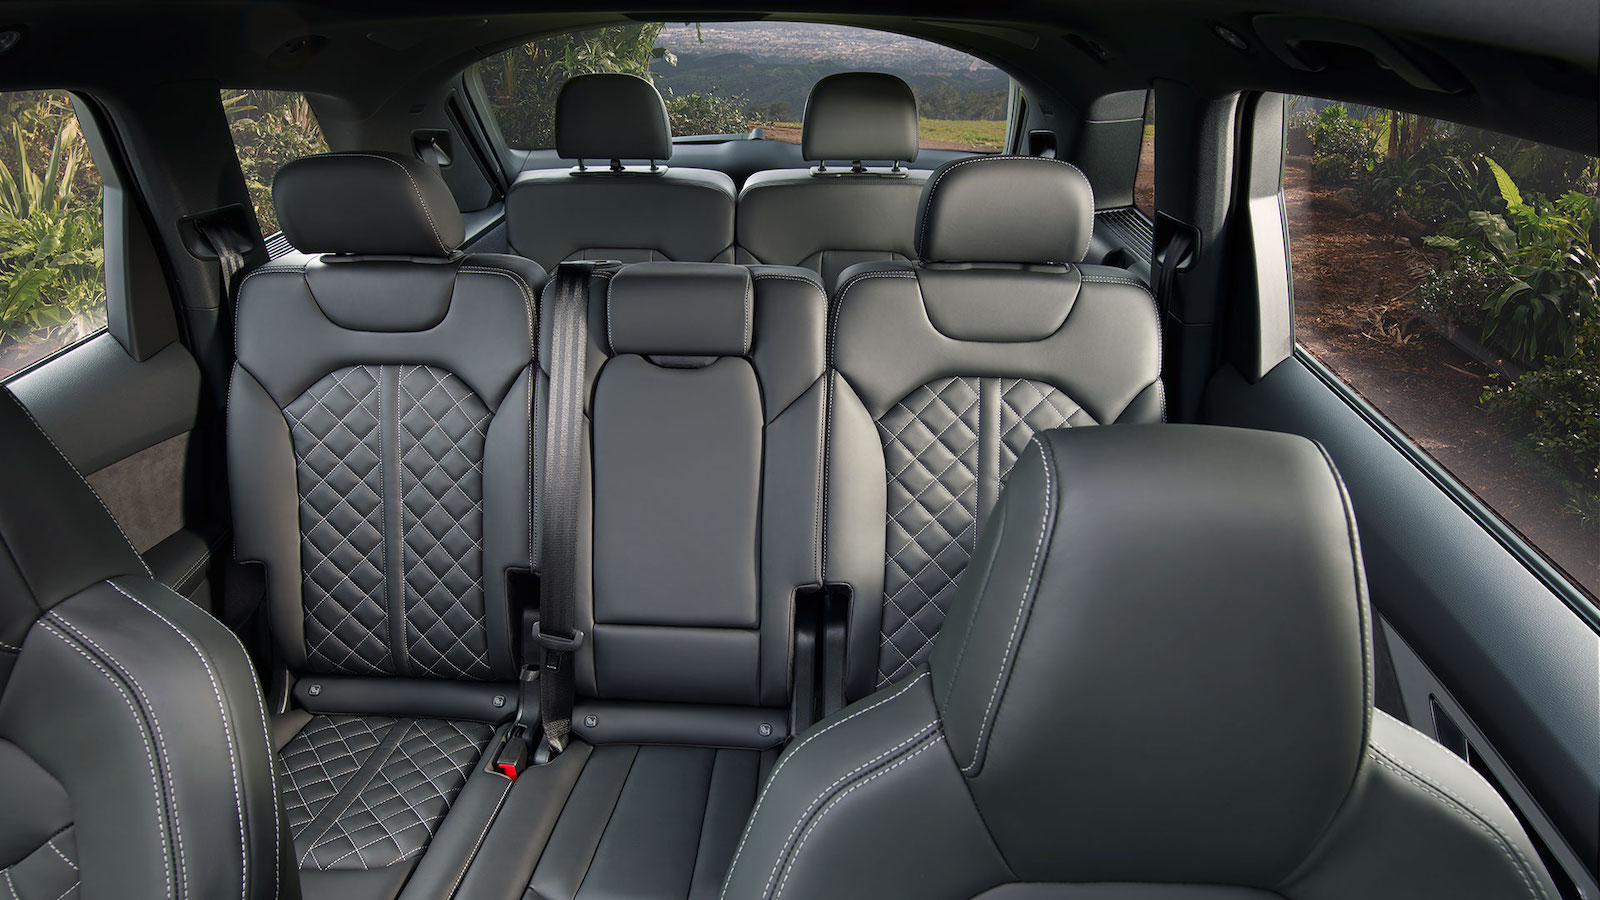 3rd-Row Seating in the Audi Q7